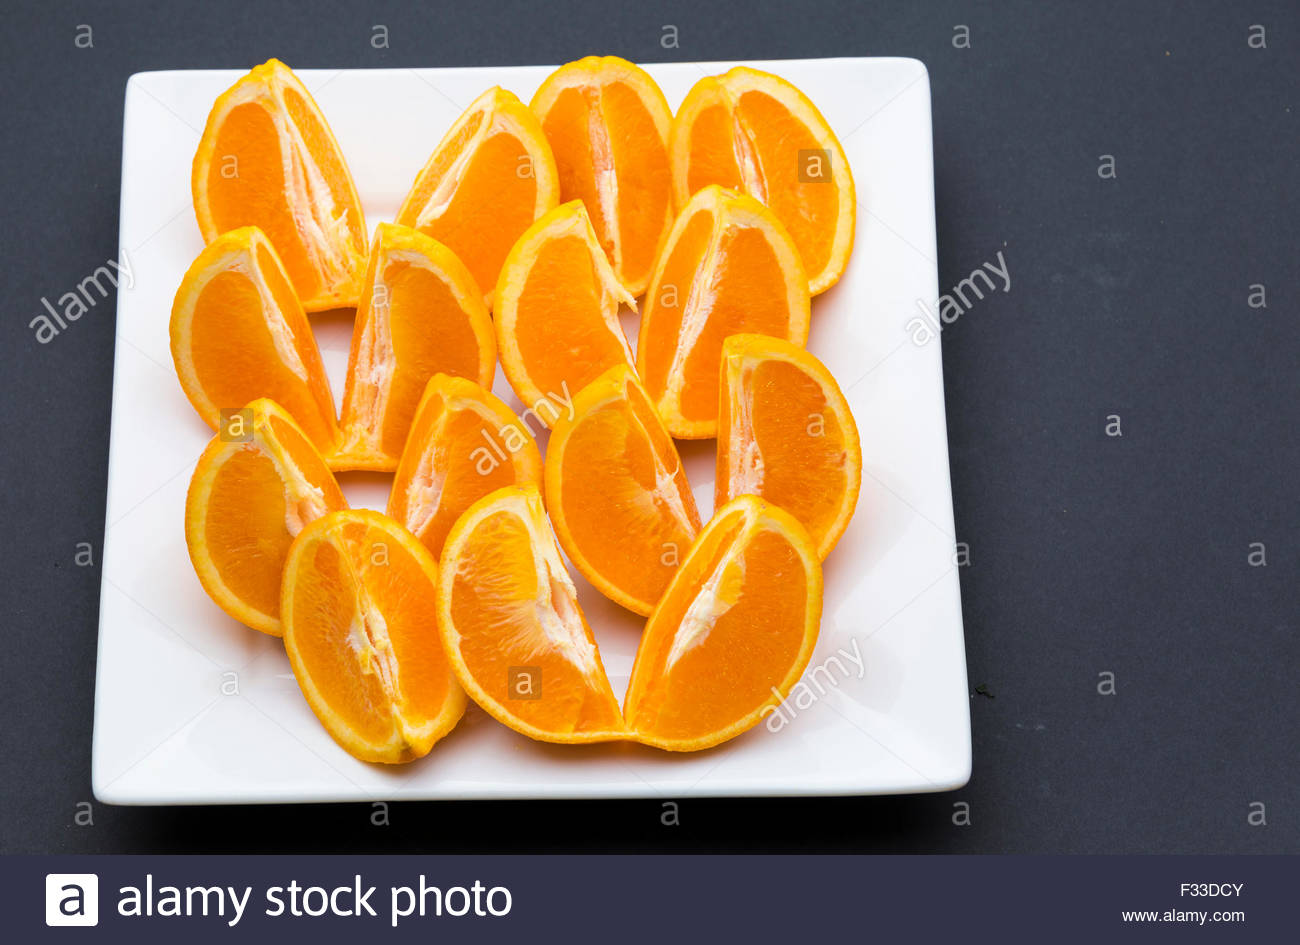 Quarter cut and unpeeled pieces of orange fruit arranged on a square white plate in black background. - Stock Image